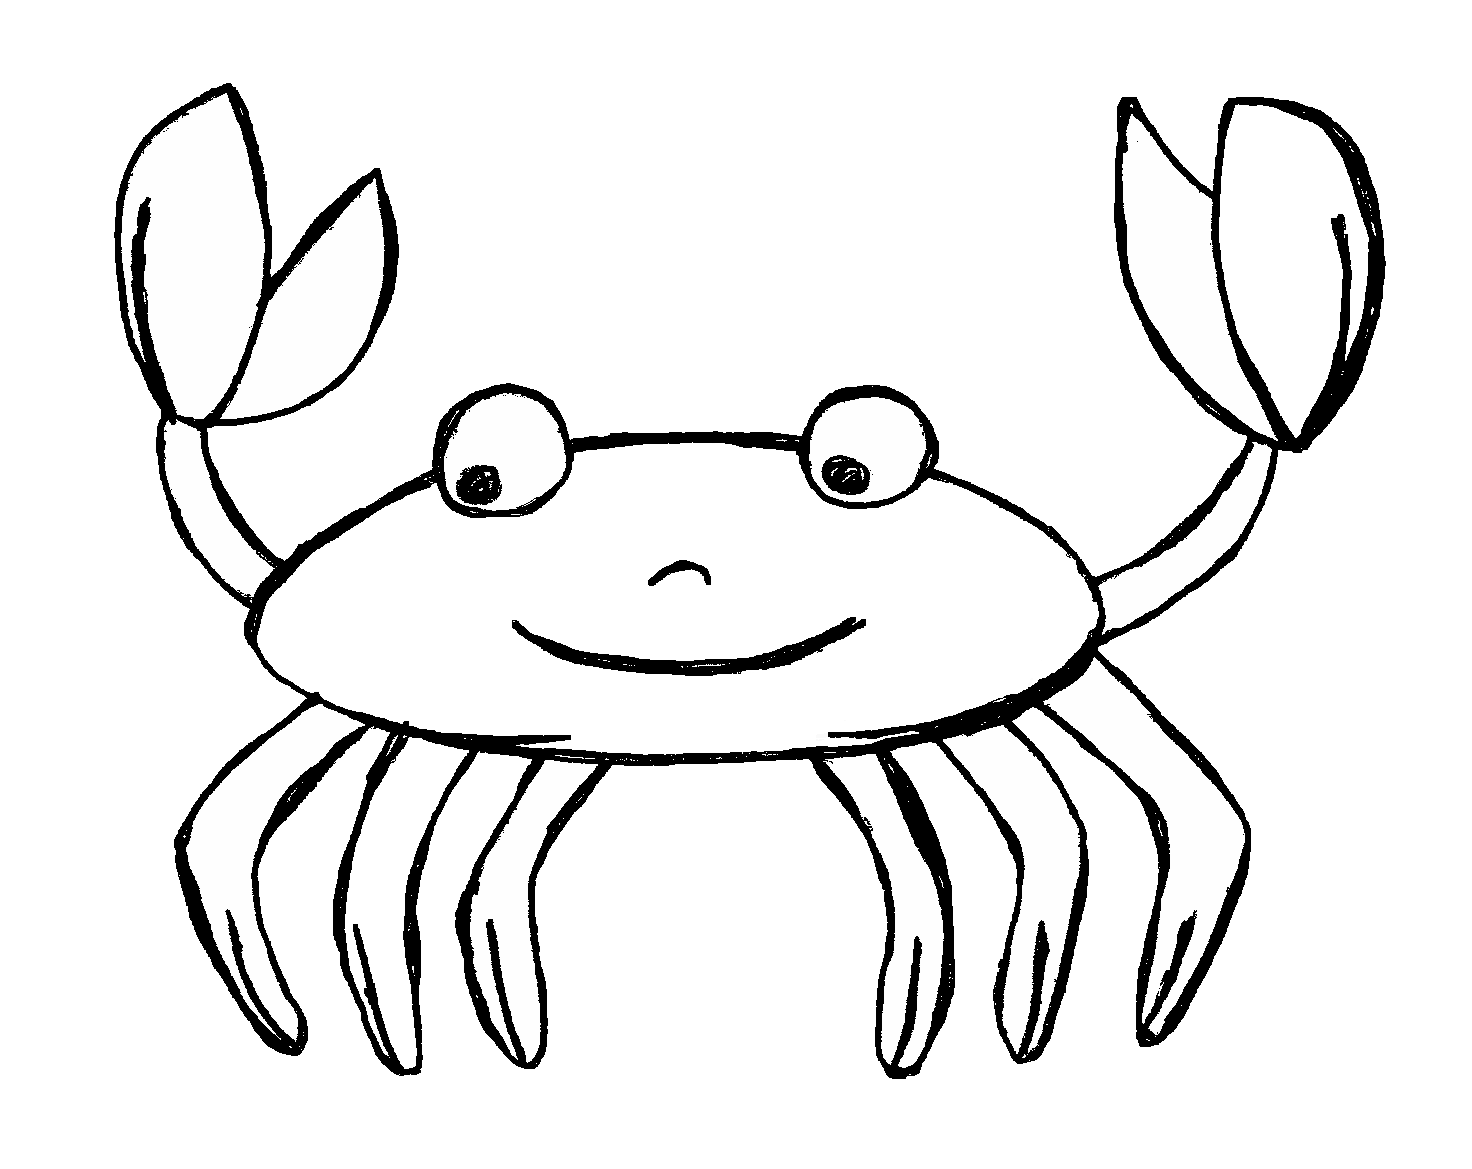 Crab  black and white crab clipart black and white free images 3